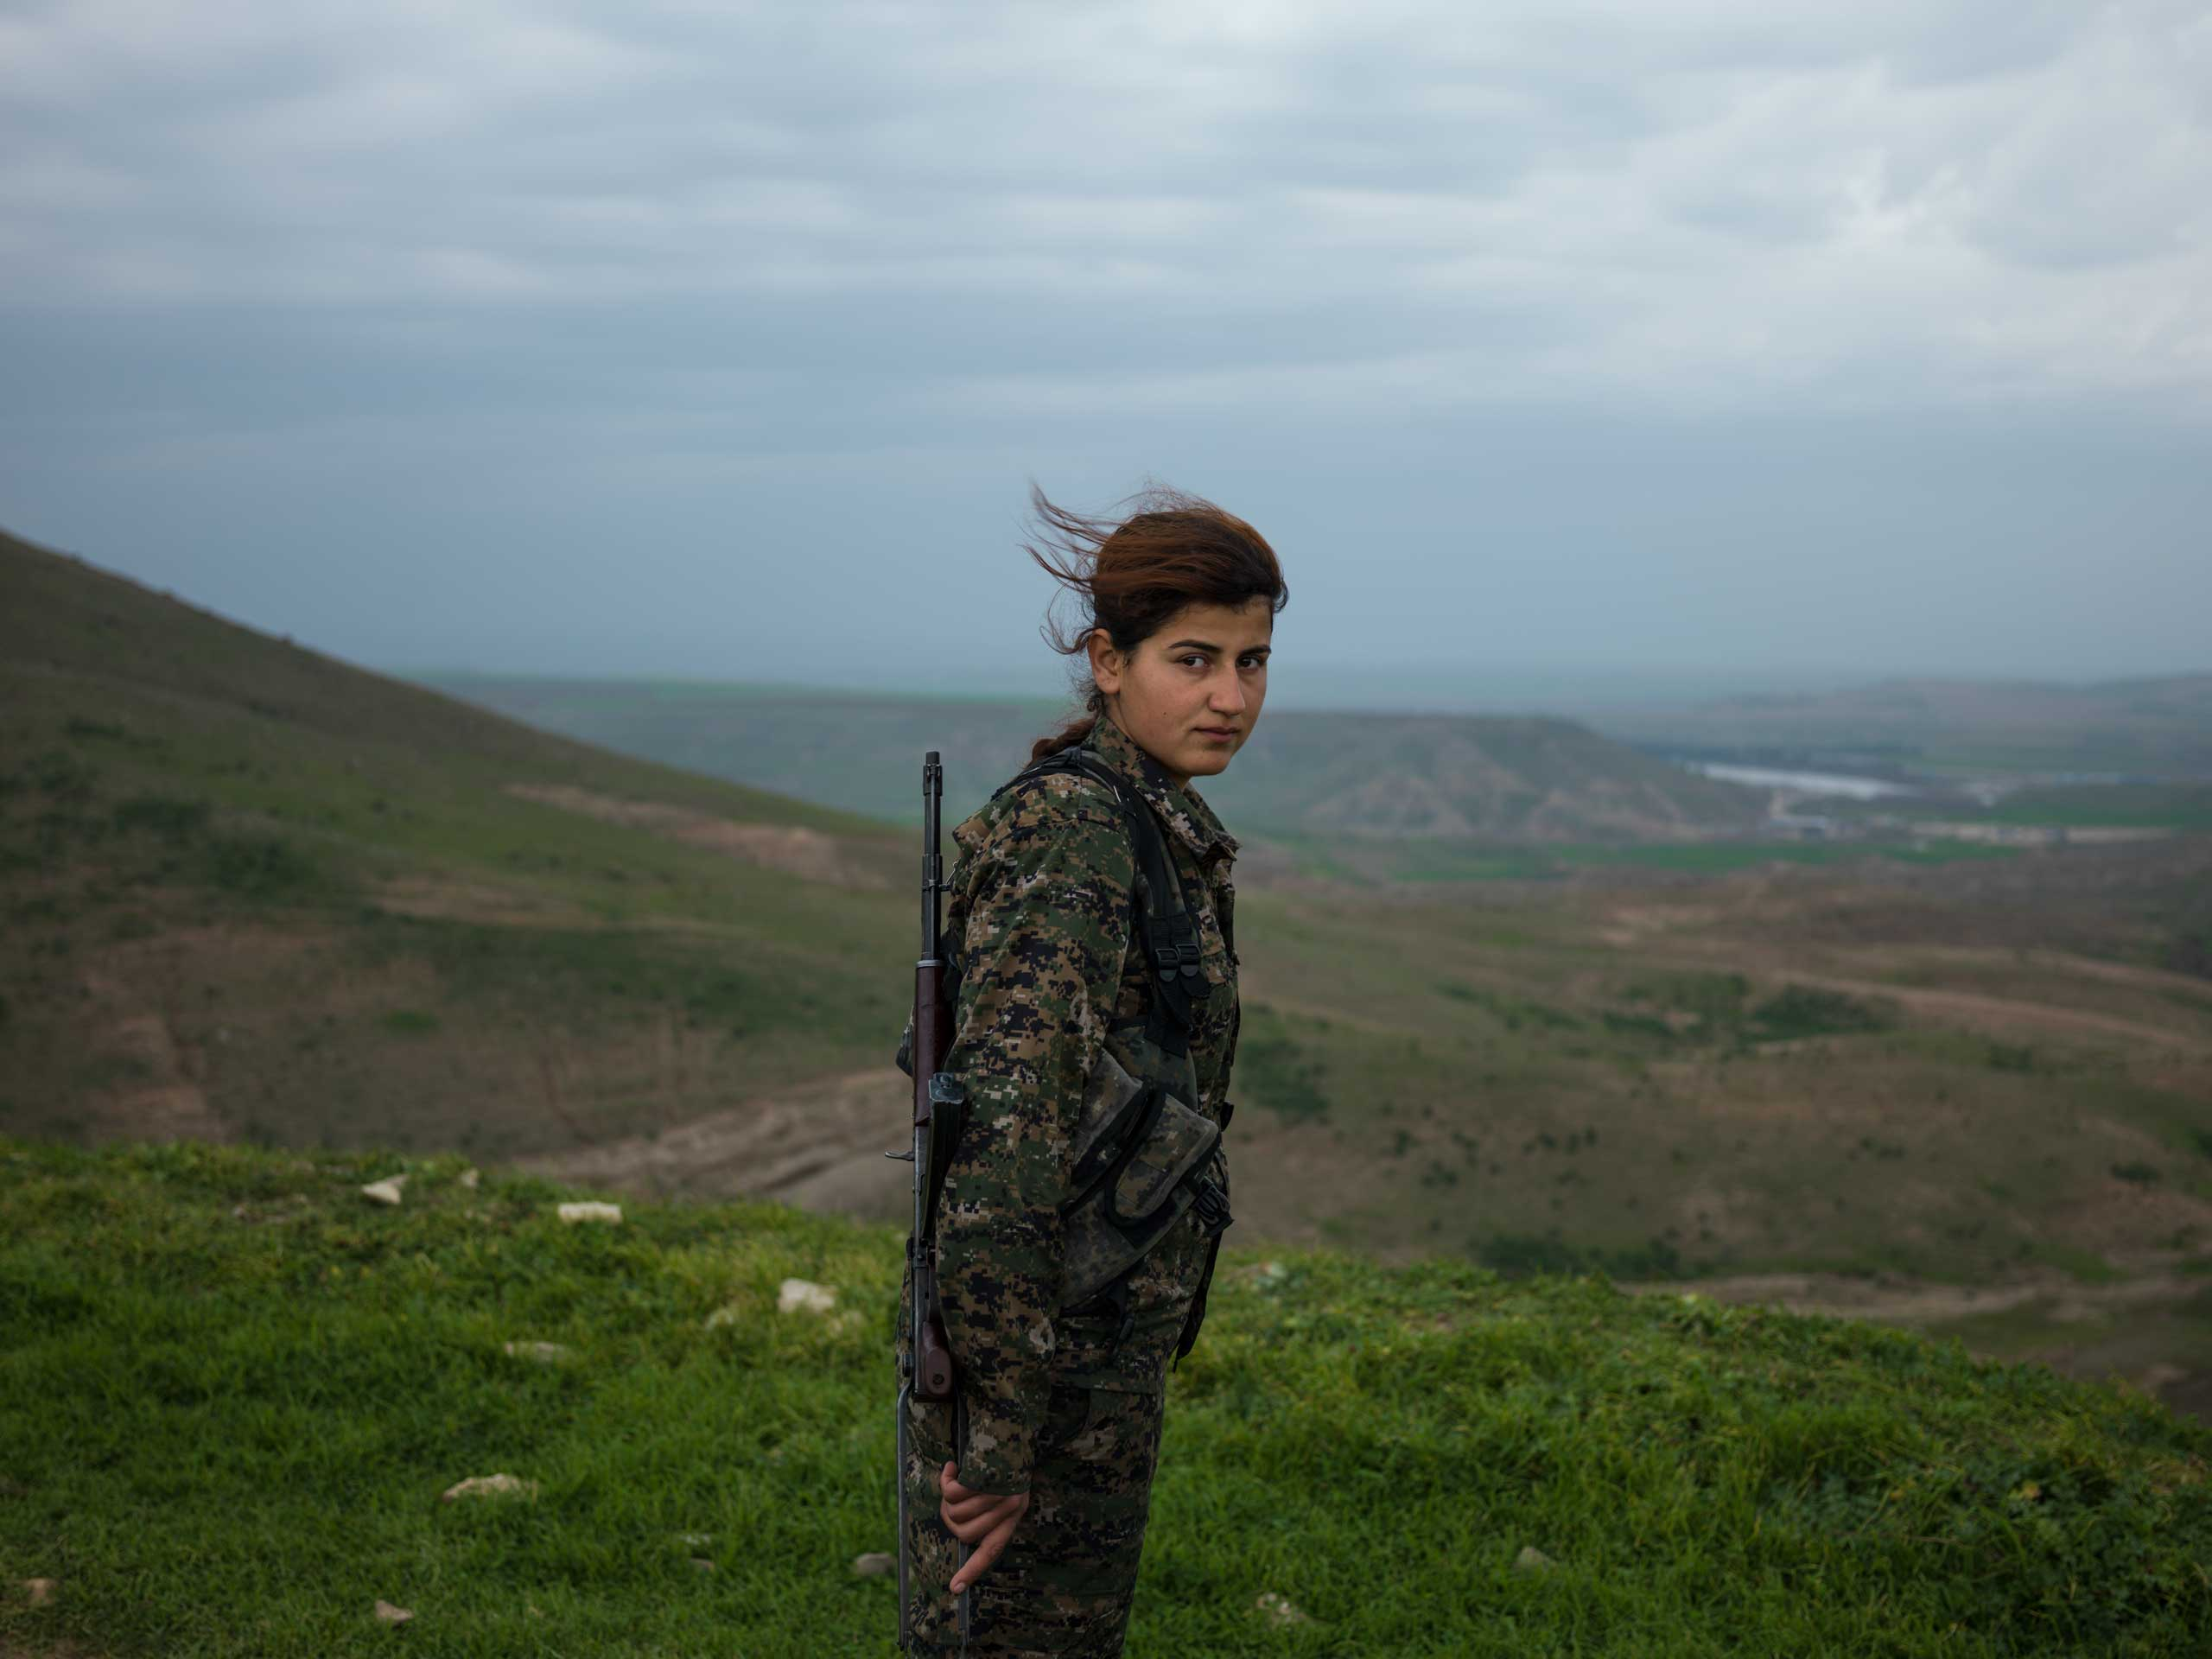 "18-year-old YPJ (Women's Protection Unit) fighter Torin Khairegi: ""We live in                     a world where women are dominated by men.                     We are here to take control of our future. I injured an ISIS jihadi in Kobani. When he was wounded, all his friends left him behind and ran away. Later I went there and buried his body. I now feel that I am very powerful and can defend my home, my friends, my country, and myself. Many of us have been martyred and I see no path other than the continuation of their path."